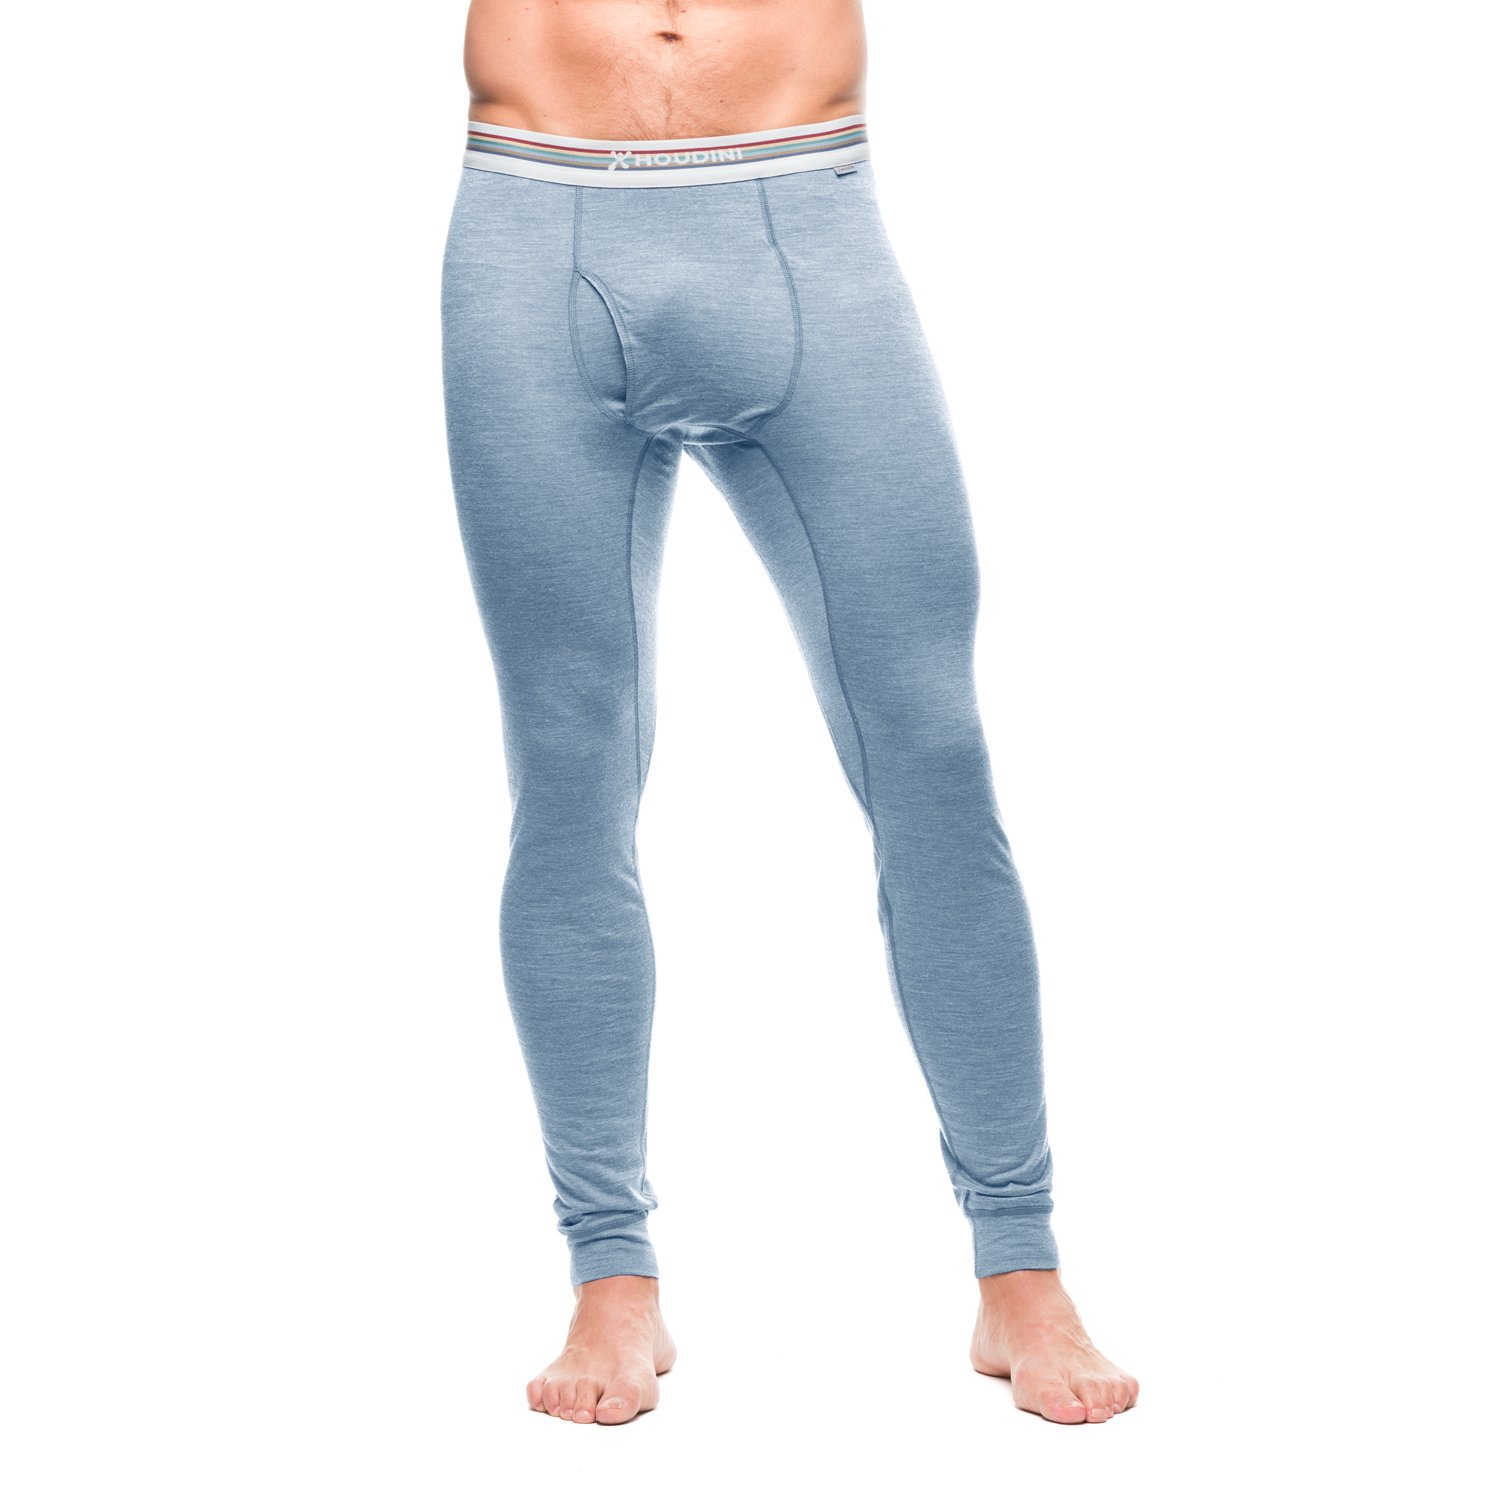 Houdini Herren Funktionsunterwäsche Ms Activist Tights